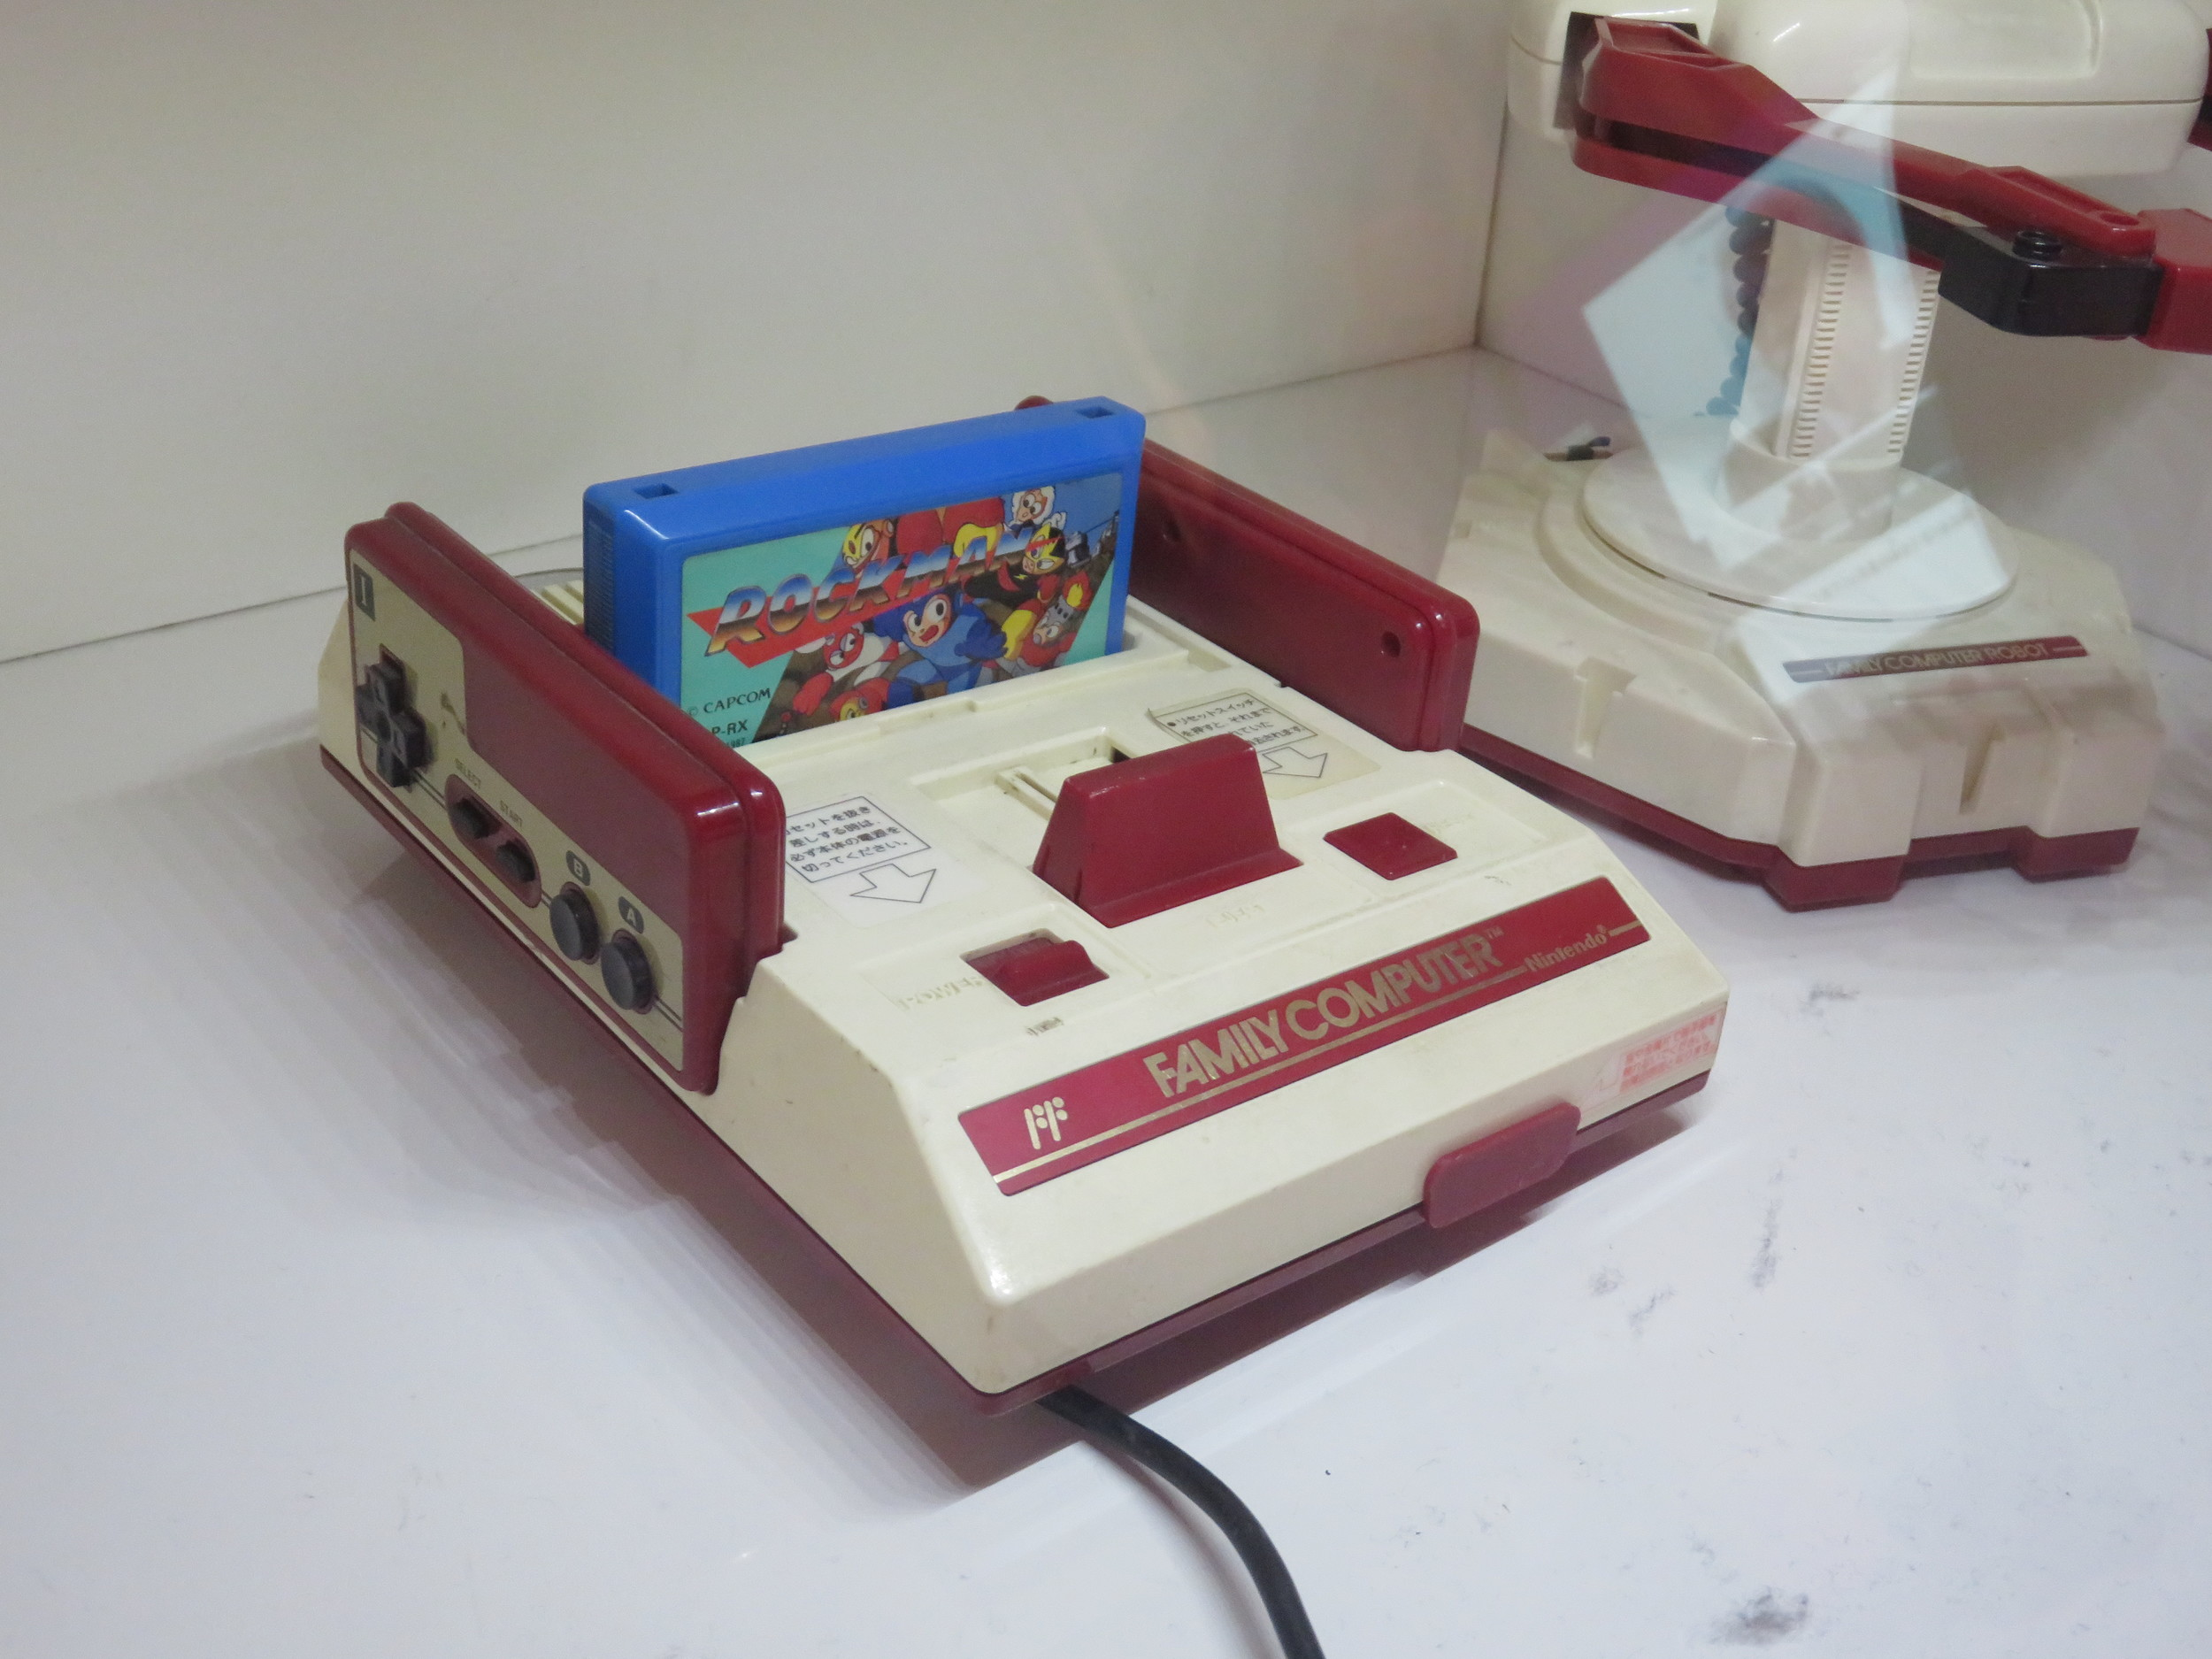 The original Famicom (Family Computer), Japanese counterpart to the NES